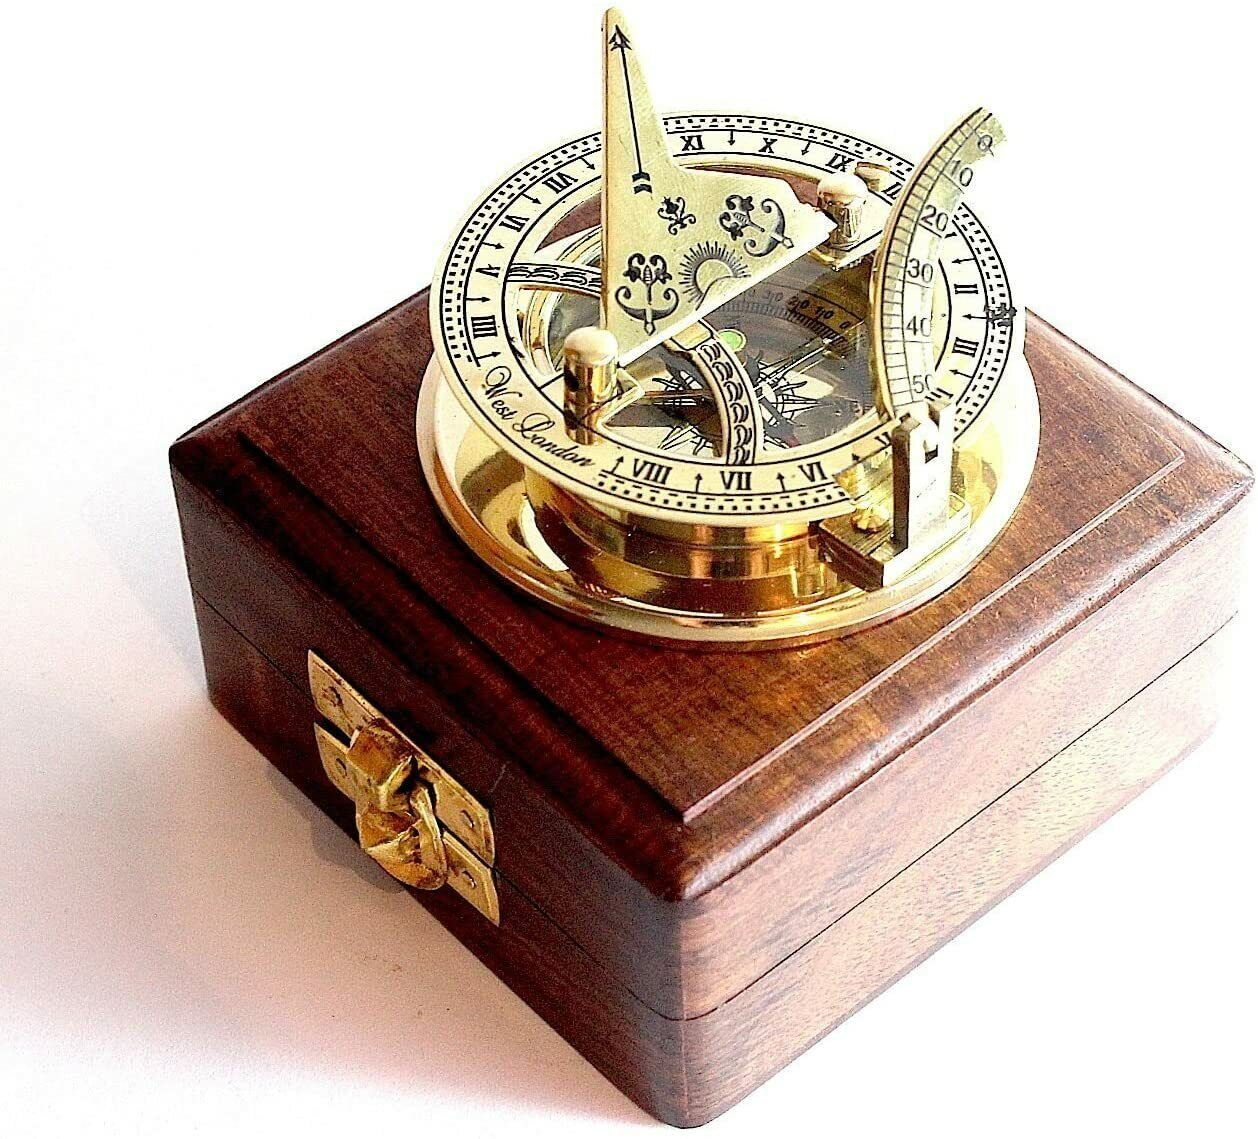 Antique Vintage Sundial Solid Brass Pocket Compass - West London With Wooden Box